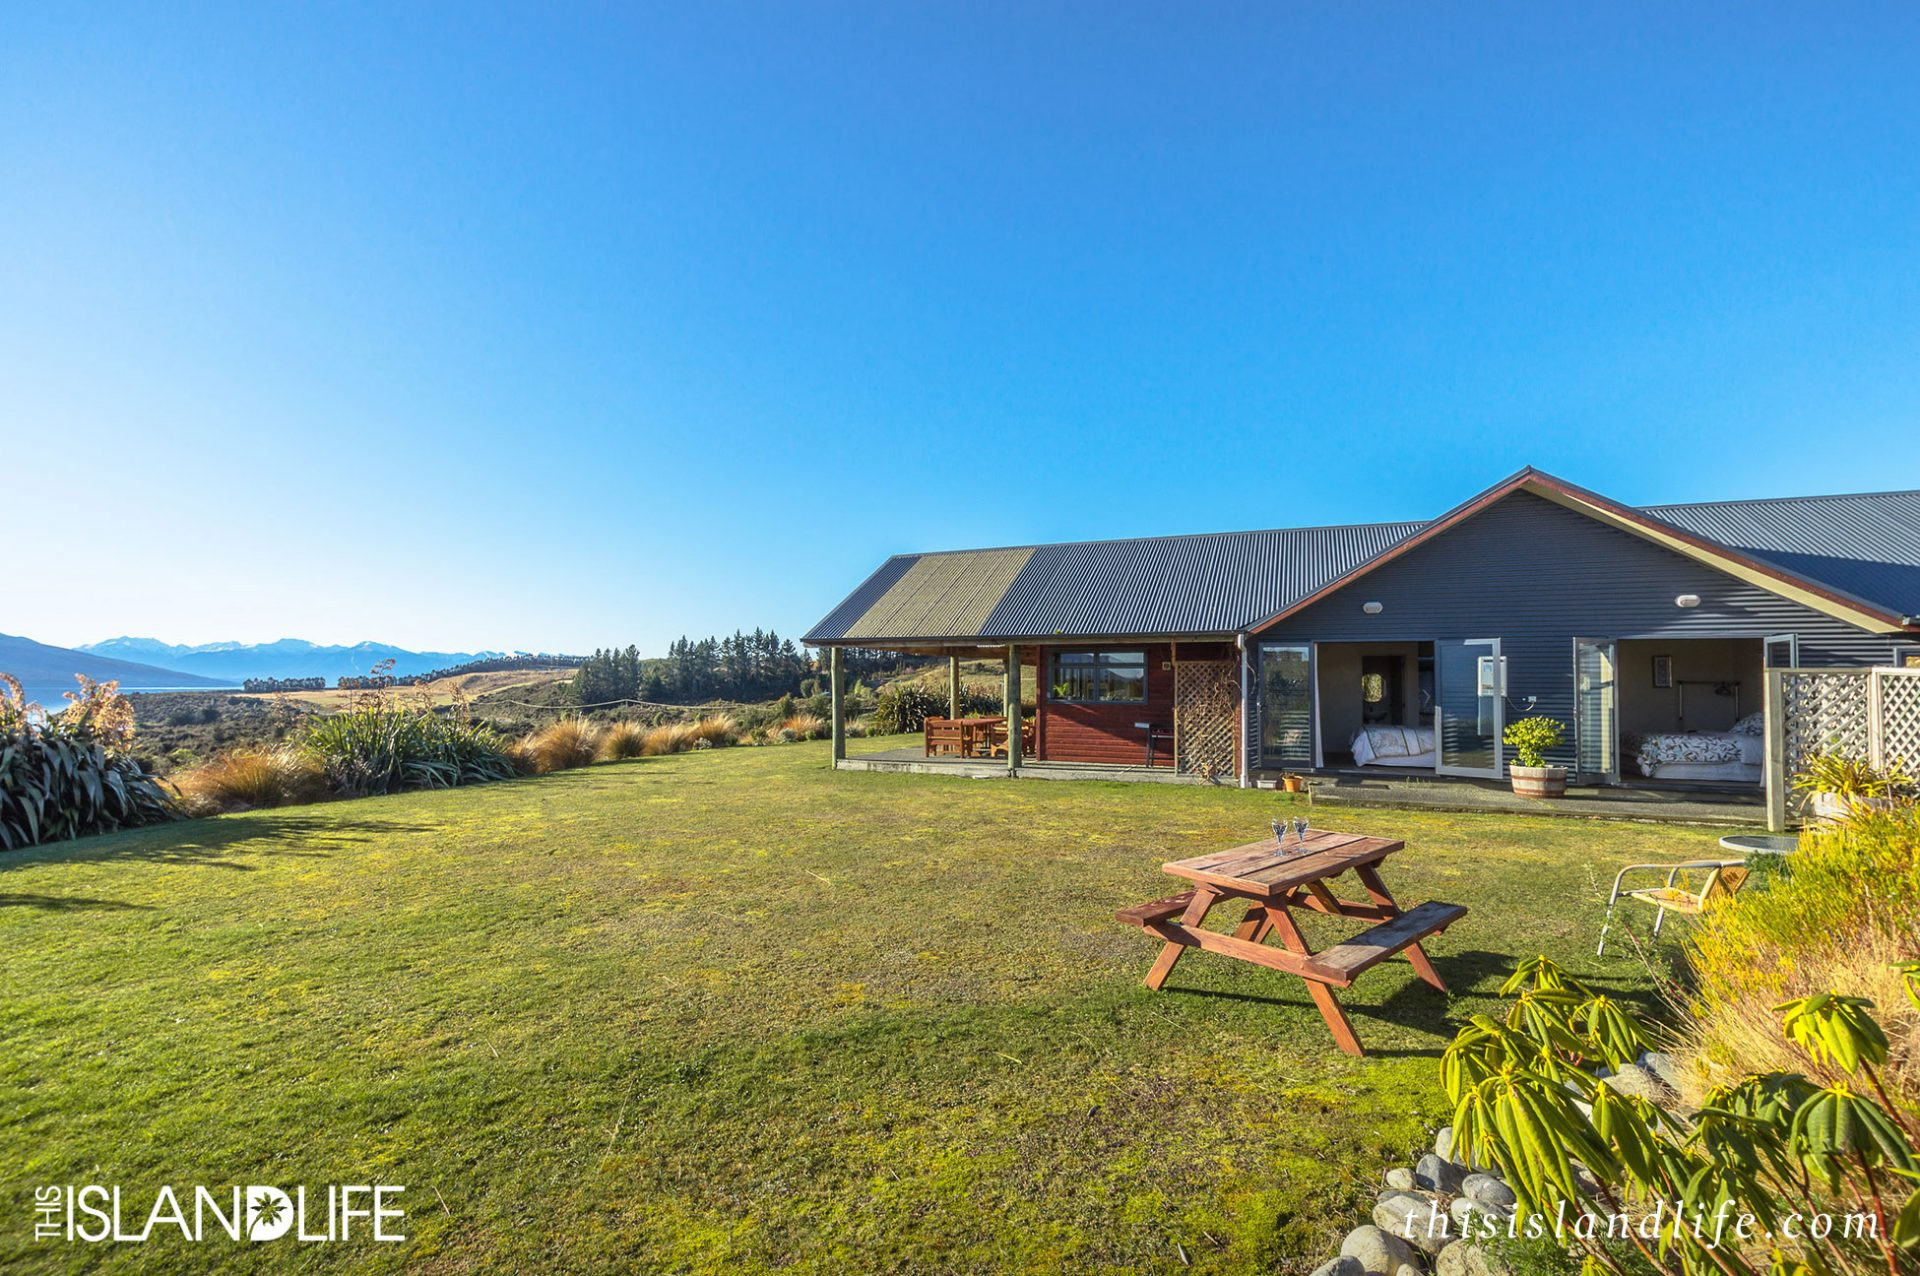 THIS ISLAND LIFE | Loch Vista in Te Anau